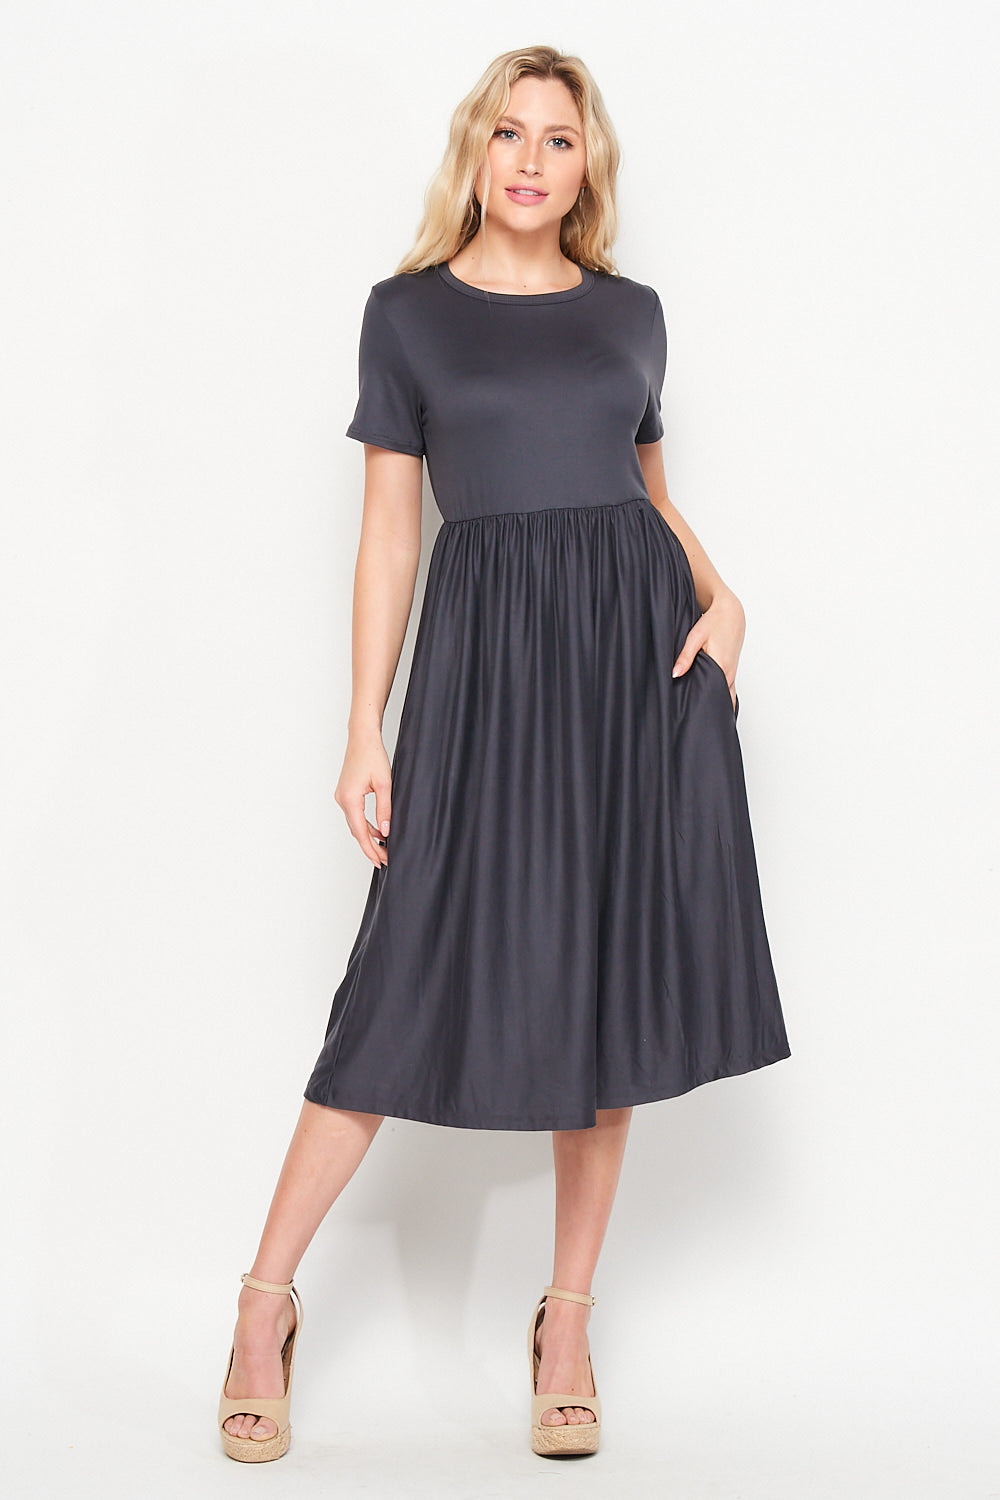 Valentina Pocket Skater Midi Dress | Charcoal - Velvet Torch